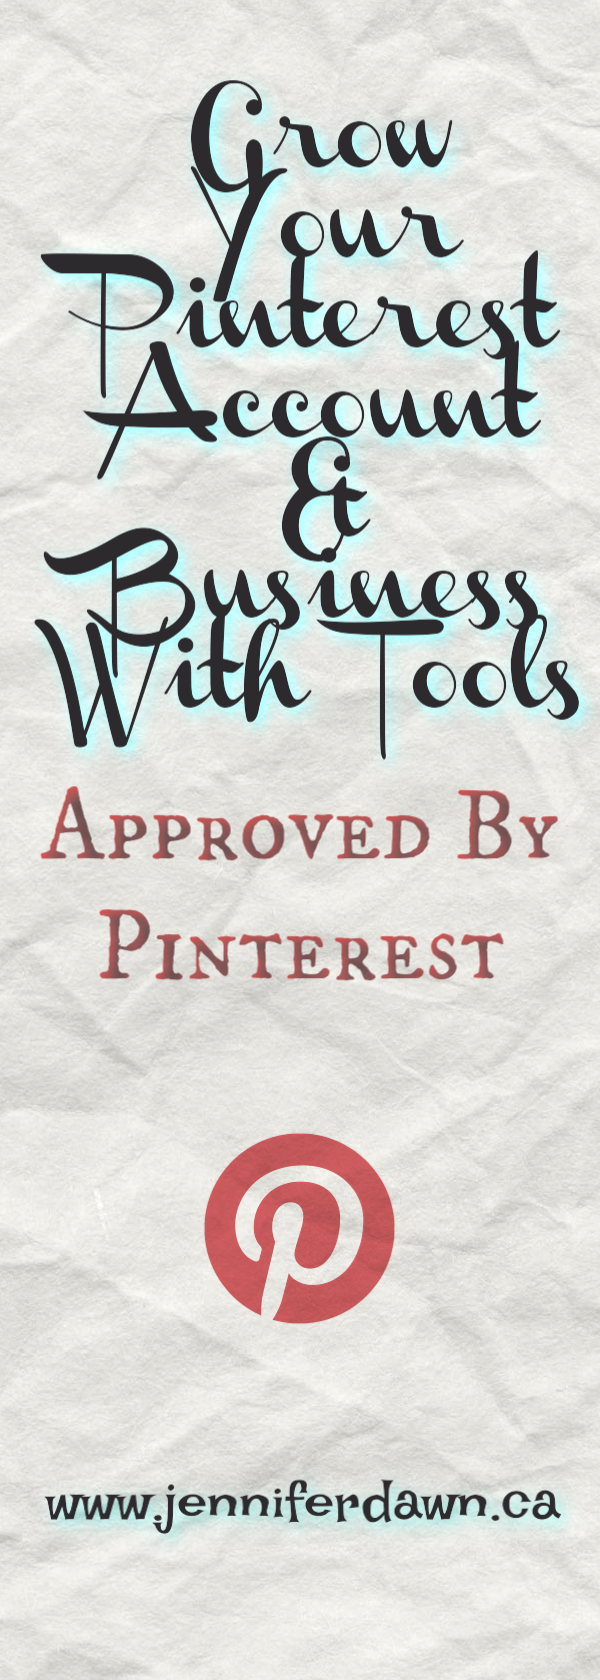 Worried about Pinterest shutting down your account for using third party tools? Check out this Blog Post to find out which are approved by Pinterest #marketingtips #entrepreneur #PinterestMarketing How To Grow Your Pinterest Account // Pinterest Marketing Tips // Pinterest Approved Tools // Grow Your Business